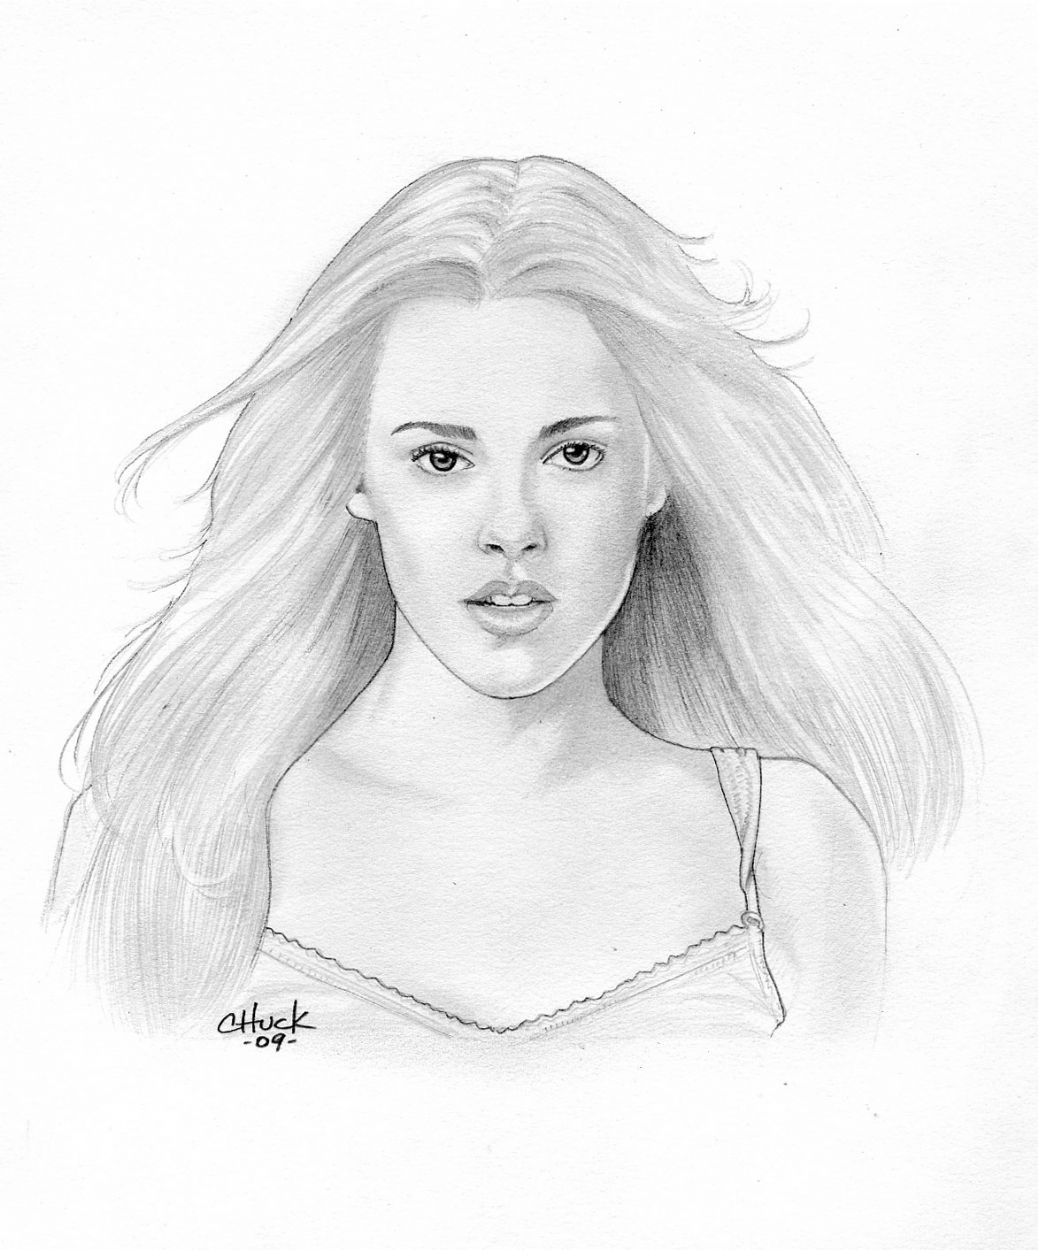 twilight coloring pages twilight bella swan commission in chuck womacks twilight comic art - Twilight Coloring Pages To Print